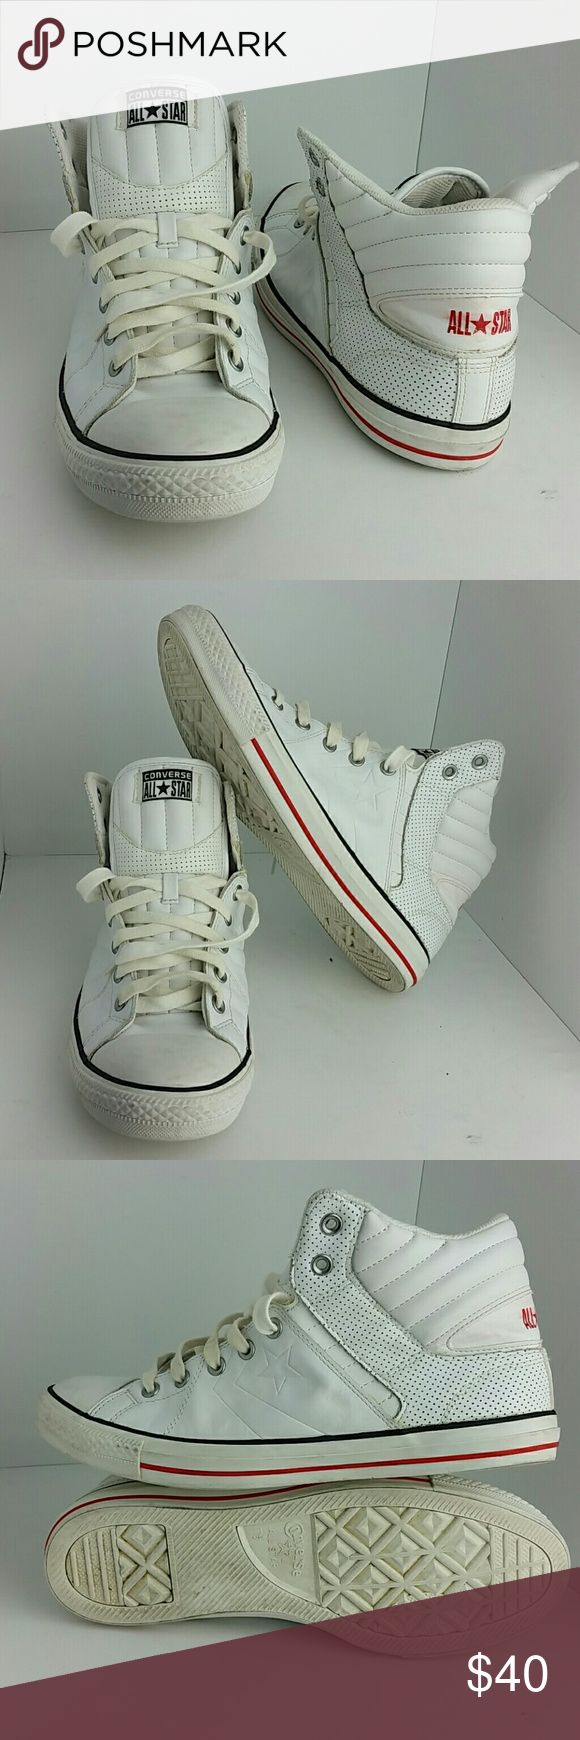 CONVERSE MEN'S FASHION SNEAKERS IN GOOD CONDITION   SKE # RM CONVERSE Shoes Sneakers